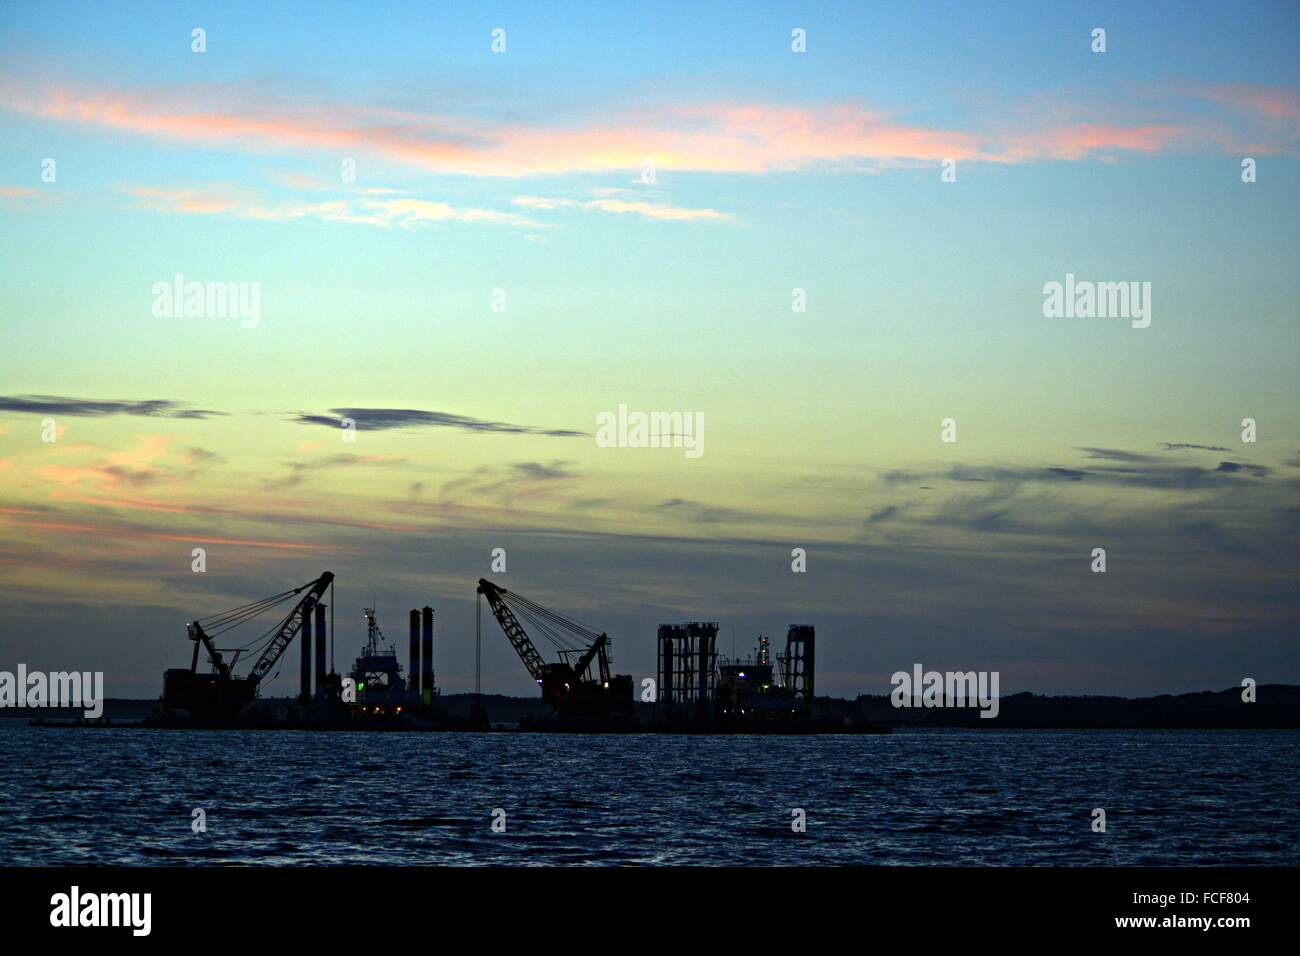 View Of Commercial Dock From Sea - Stock Image